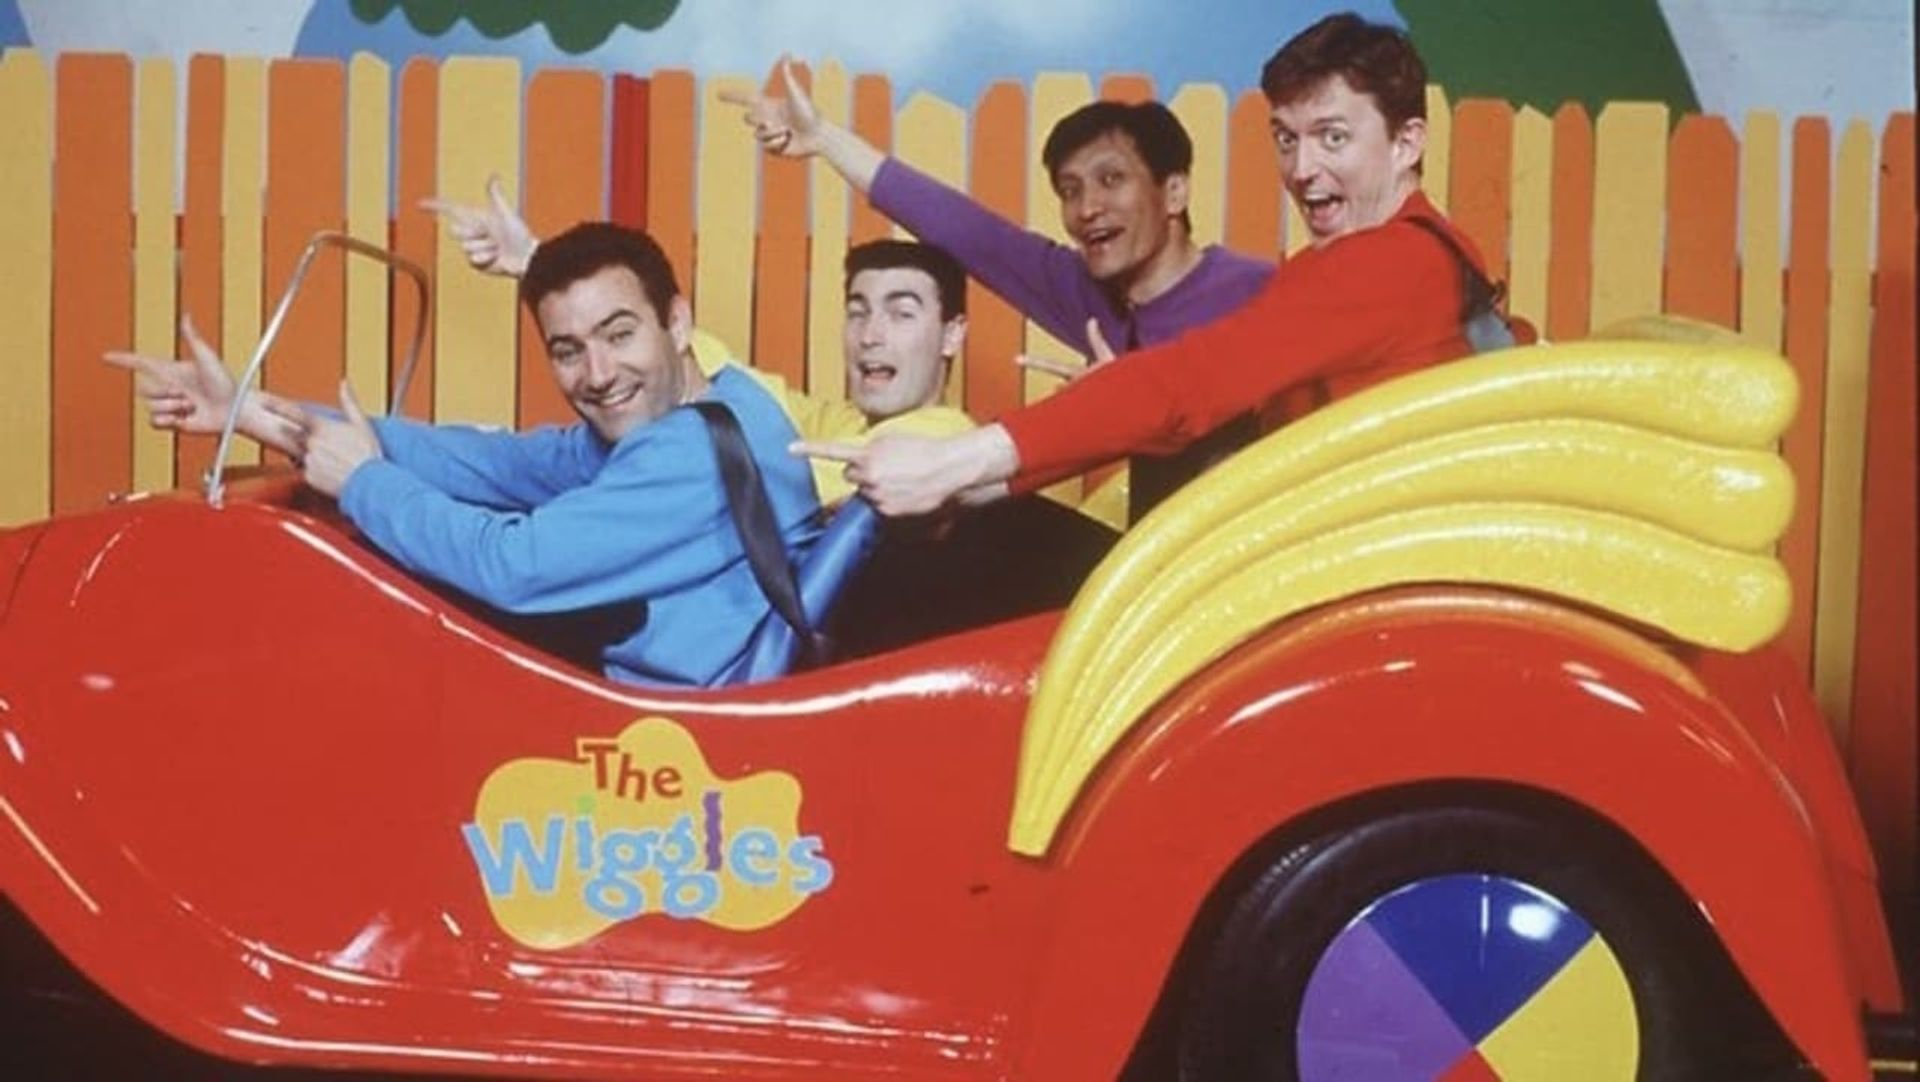 The Wiggles Season 3: Where To Watch Every Episode | Reelgood